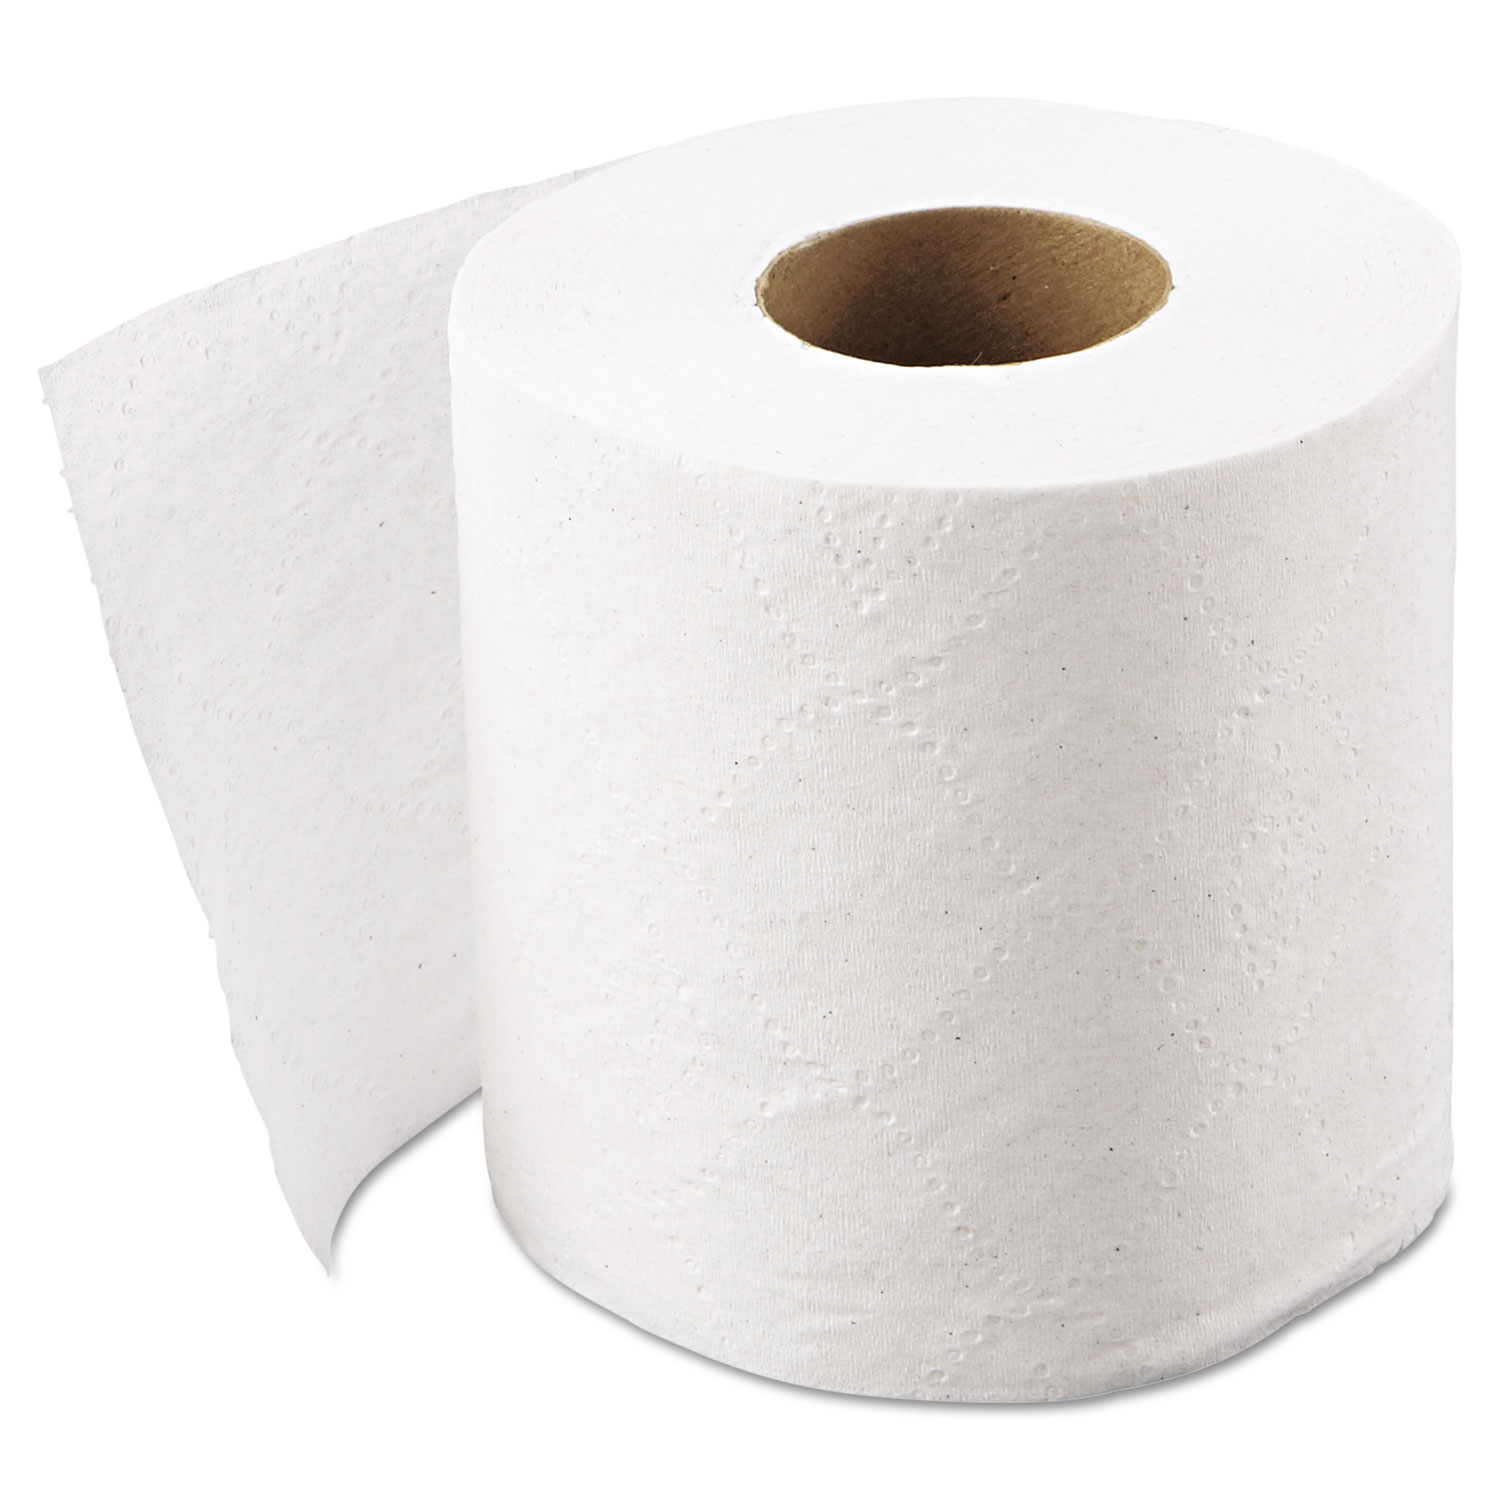 TISSUE,1000 1PLY TOILET